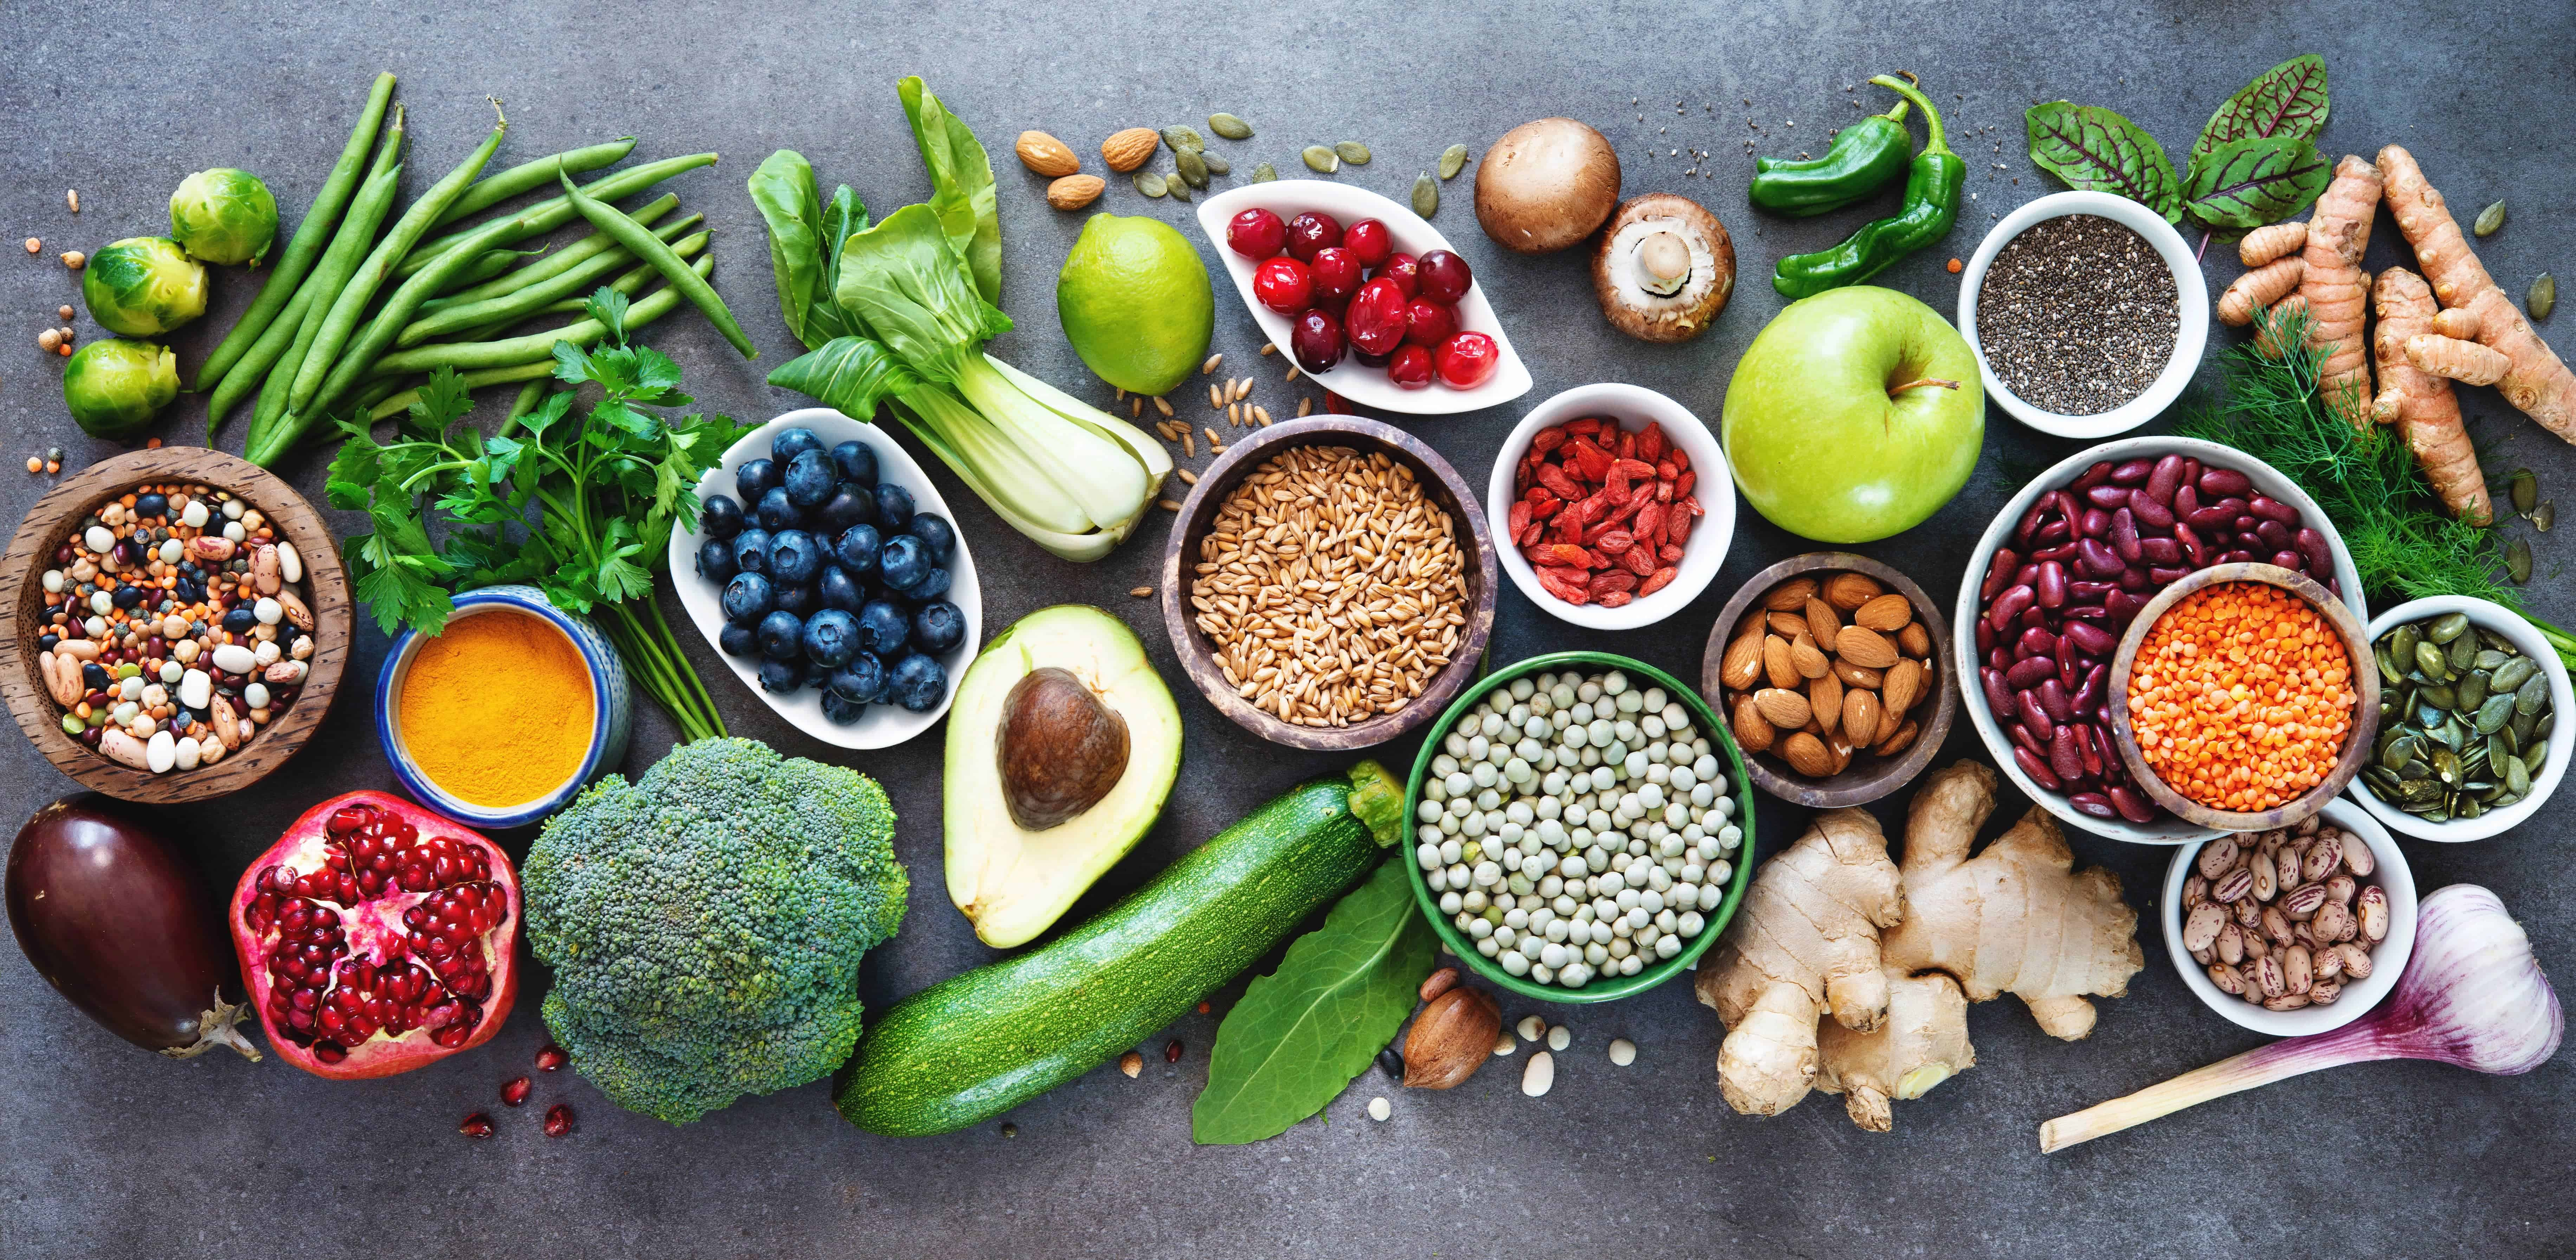 7 healthy eating tips for people 65 judson senior living